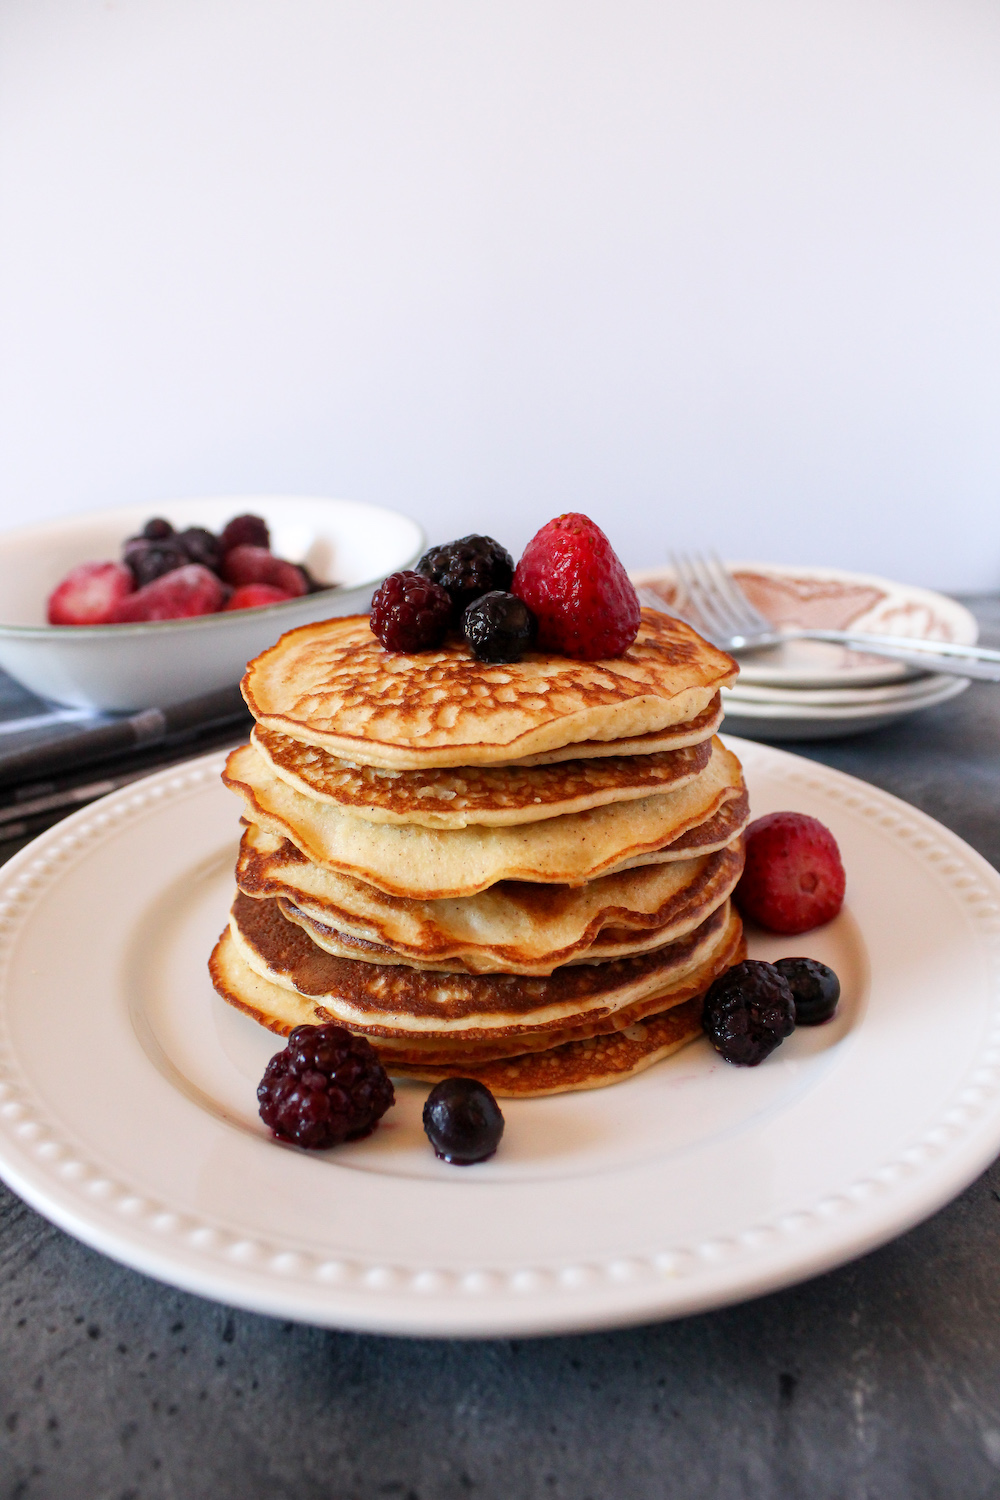 Delicious Keto Almond Flour Cream Cheese Pancakes